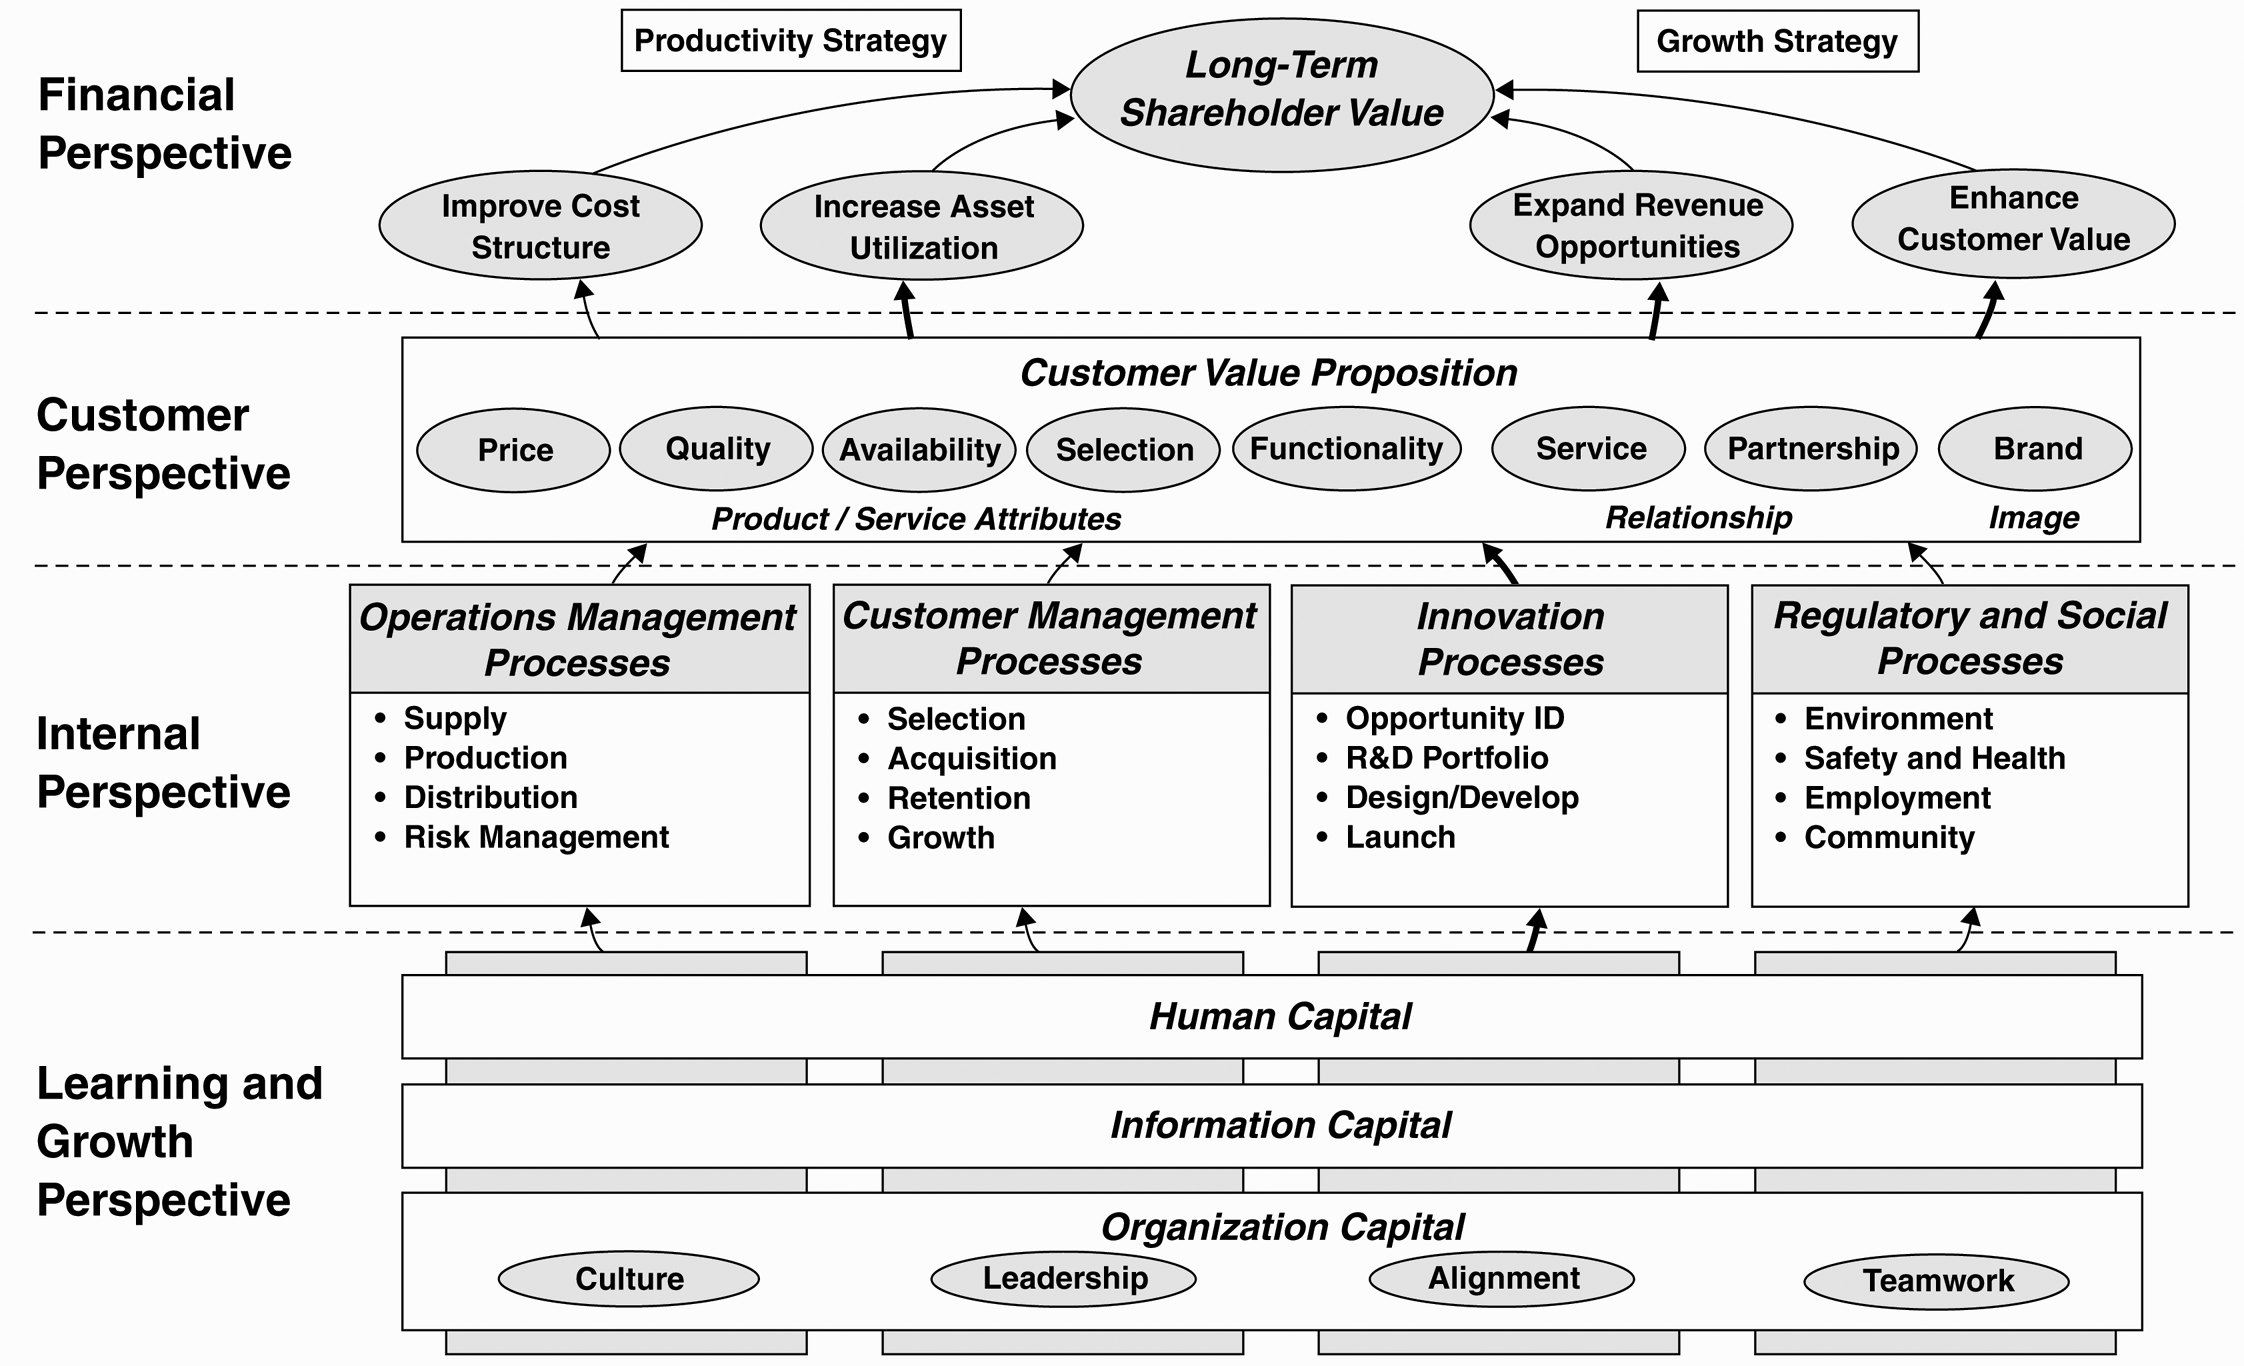 A Strategy Map Represents How the Organization Creates Value (Kaplan and Norton, 2004)